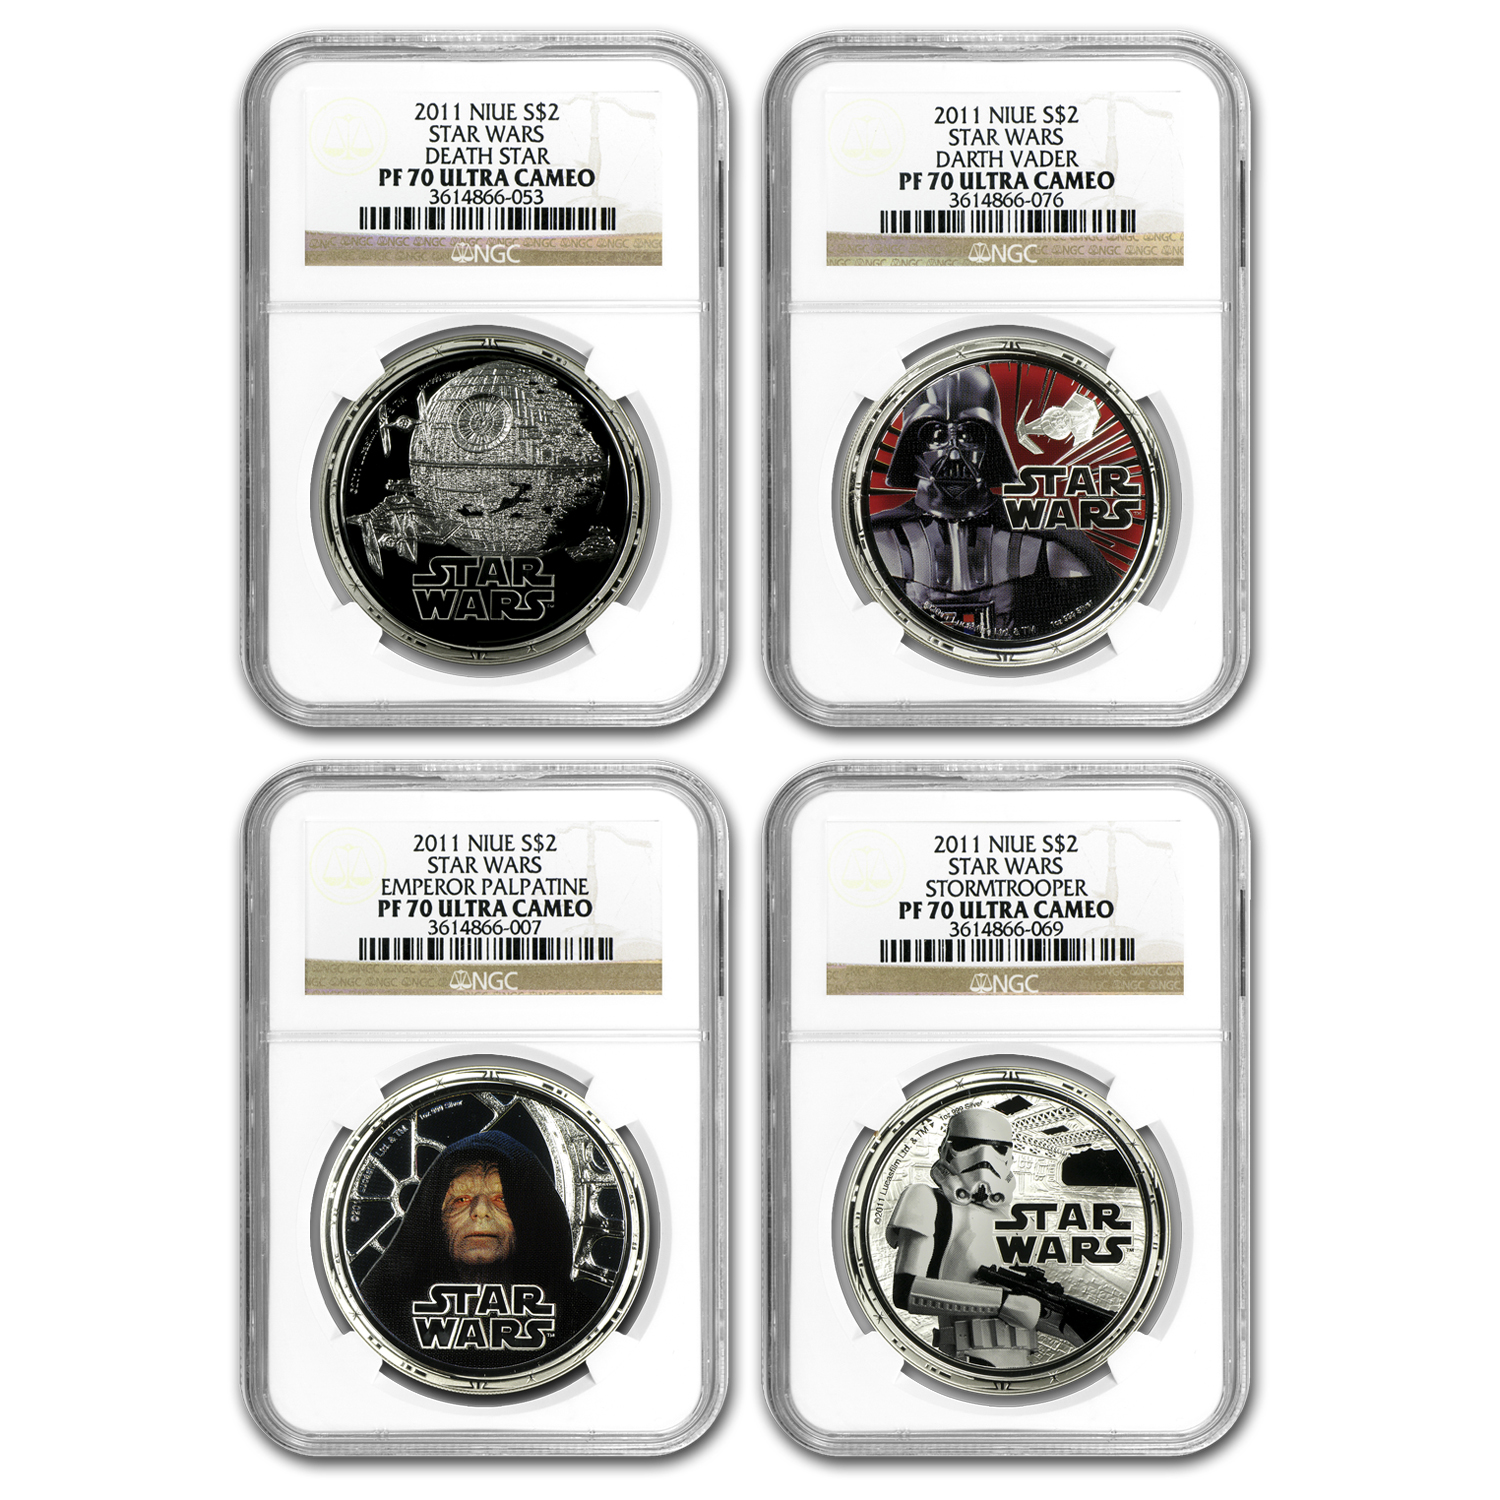 2011 Niue 4-Pc 1 oz Silver $2 Star Wars Set PF-70 NGC (Dark Side)